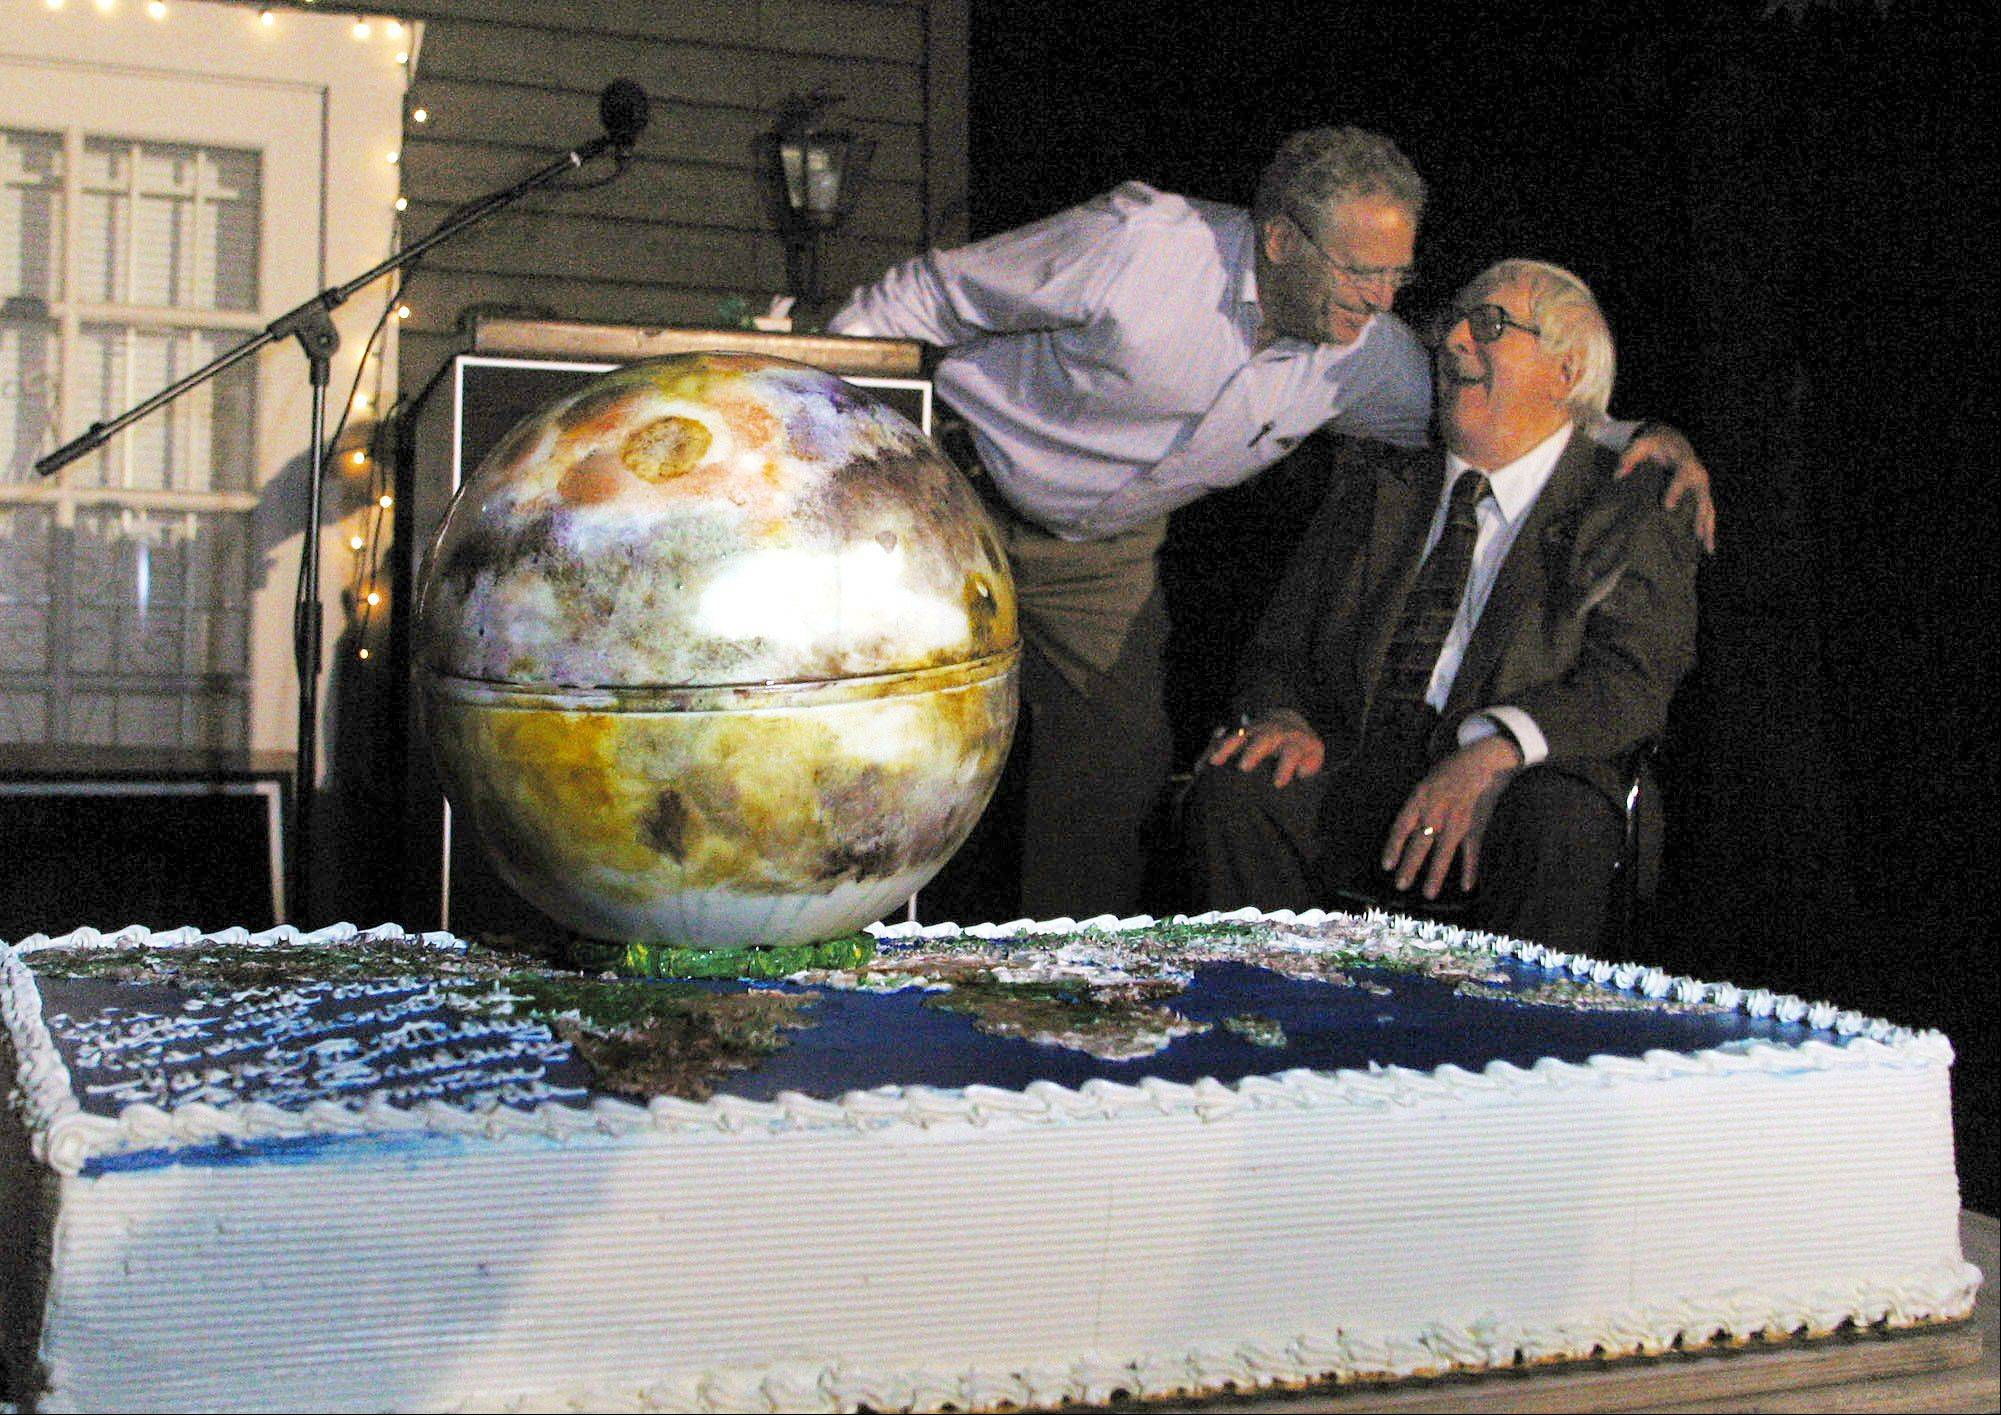 "Dr. Louis Friedman, left, executive director of The Planetary Society, presents author Ray Bradbury, with a Mars-shaped cake at Bradbury's 83rd birthday party held Saturday, Aug. 23, 2003, at the Planetary Society in Pasadena, Calif. Bradbury celebrated his 83rd birthday with this wish: One night, 100 years from now, a youngster will stay up late reading his 1950 classic ""The Martian Chronicles"" with a flashlight under his blanket _ on the Red Planet."